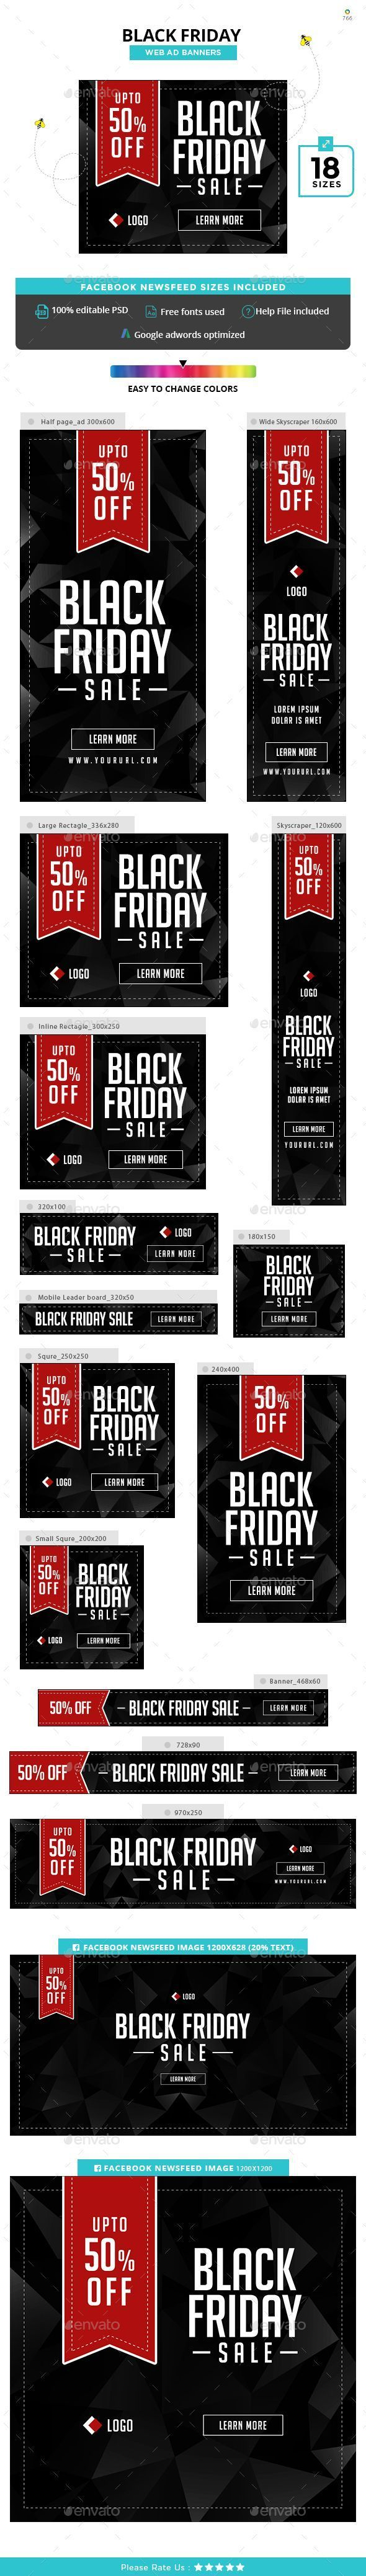 Black Friday Banners   Ads Elements  Banner ad insp  Black Friday Banners   Ads Elements  Banner ad insp